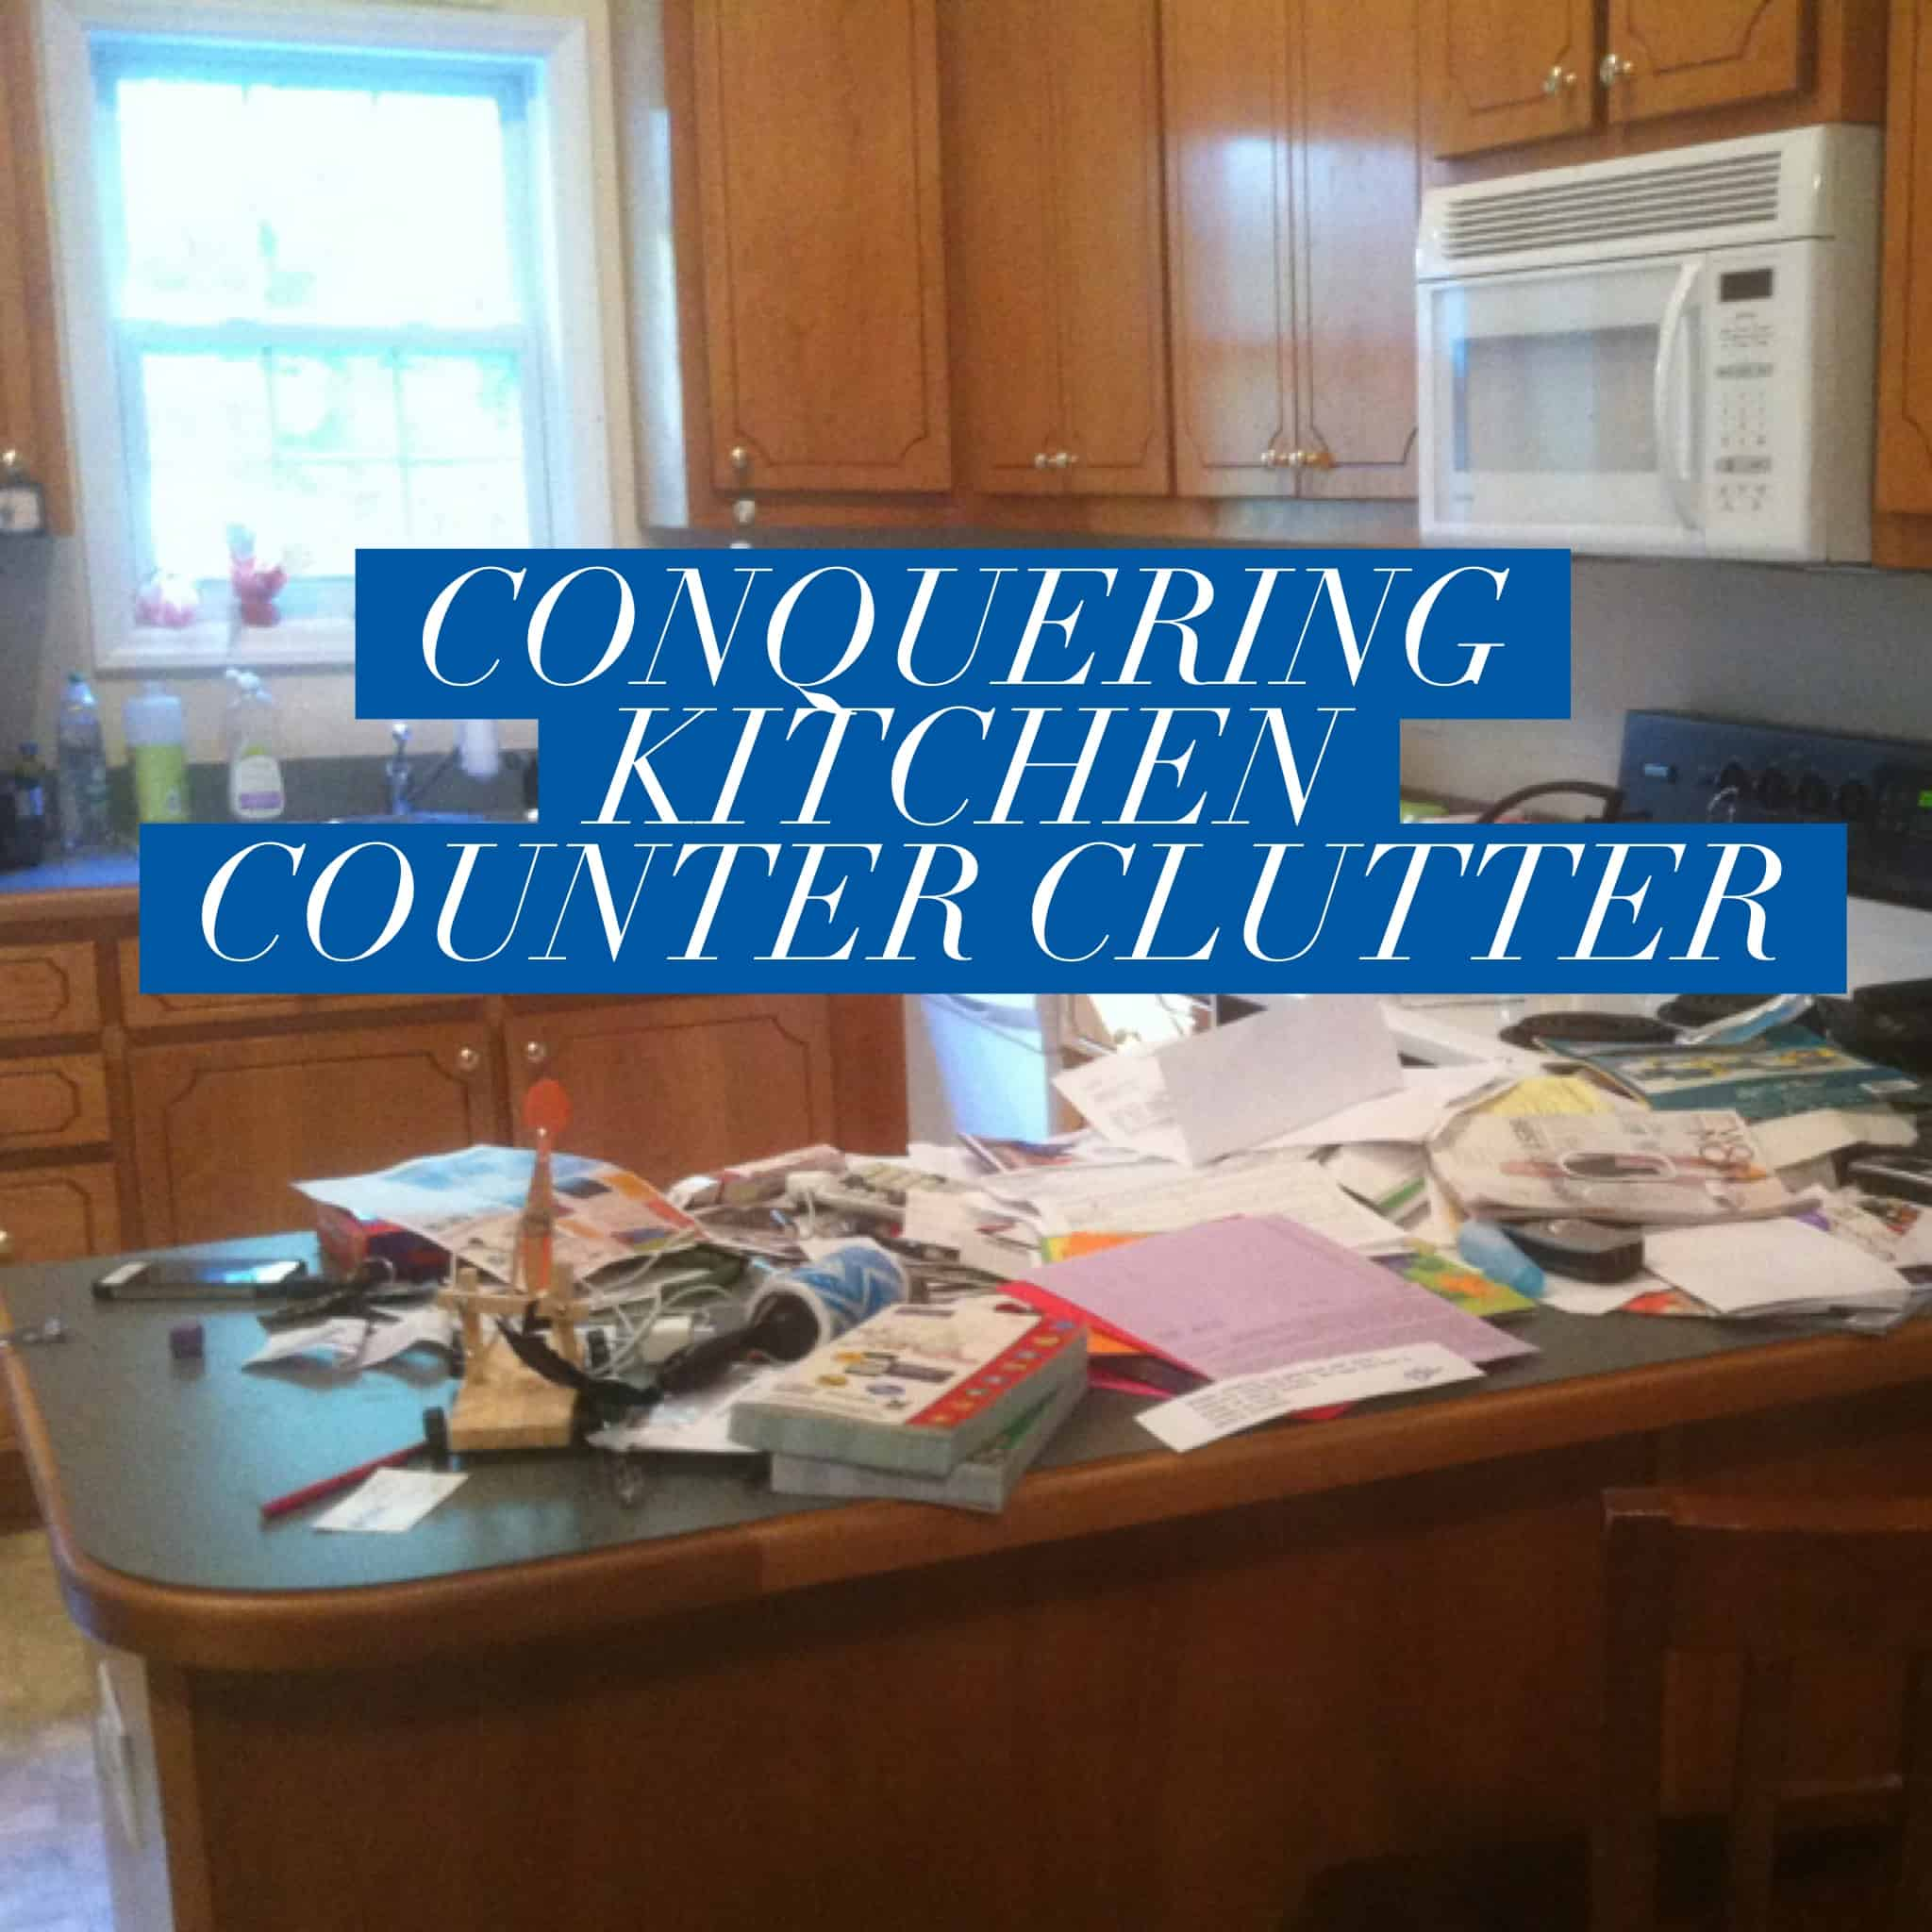 Conquering Kitchen Counter Clutter Title